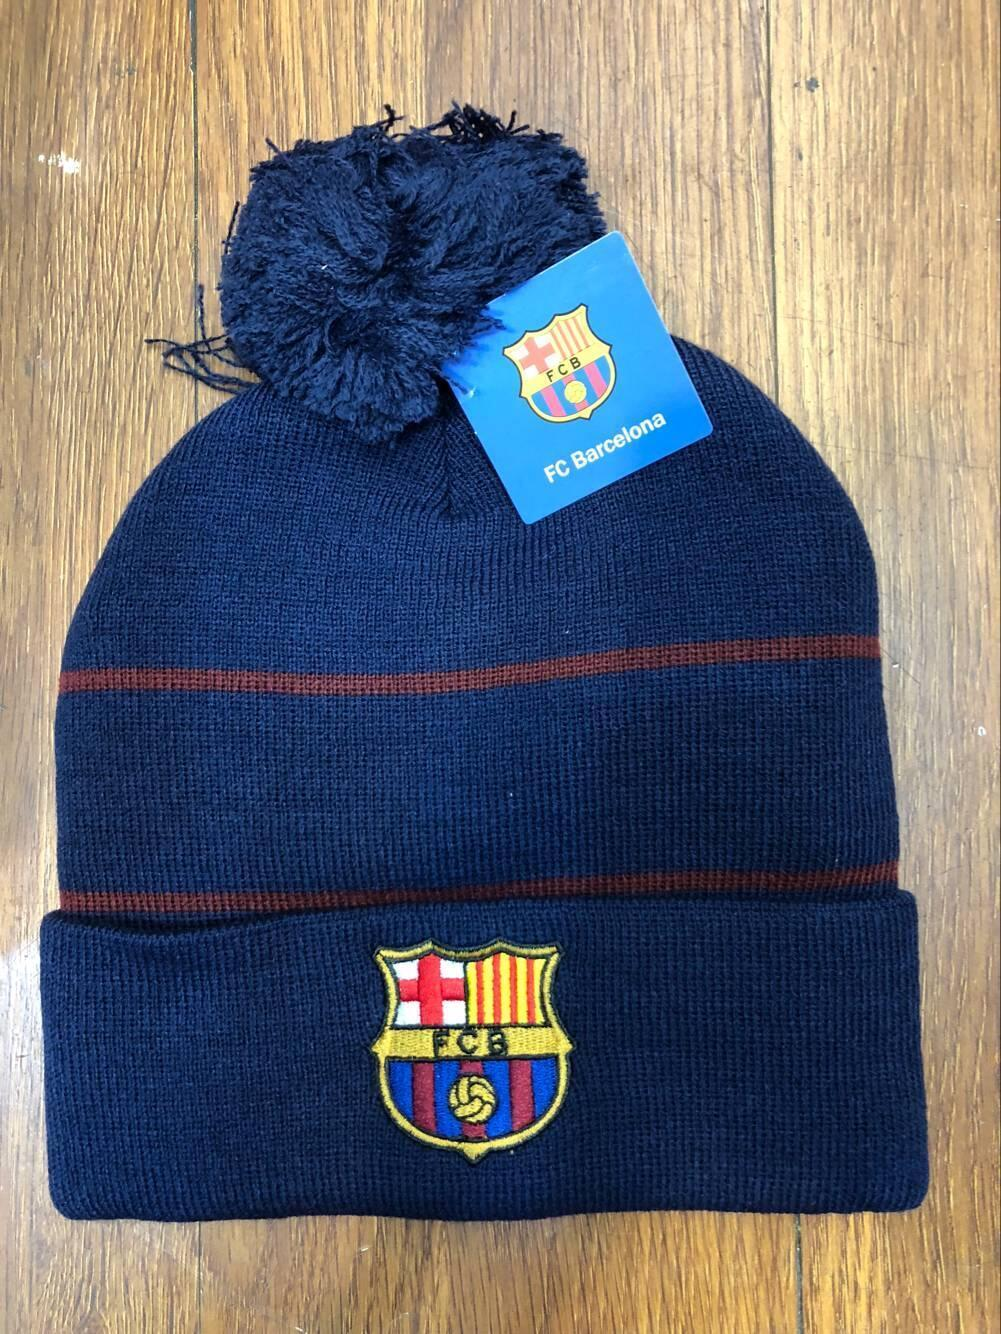 47f9a3a4933 Football Club Soccer Knitted Beanie Bobble Hat Winter Cap Real  Madrid LIV PSG 5 5 of 6 ...